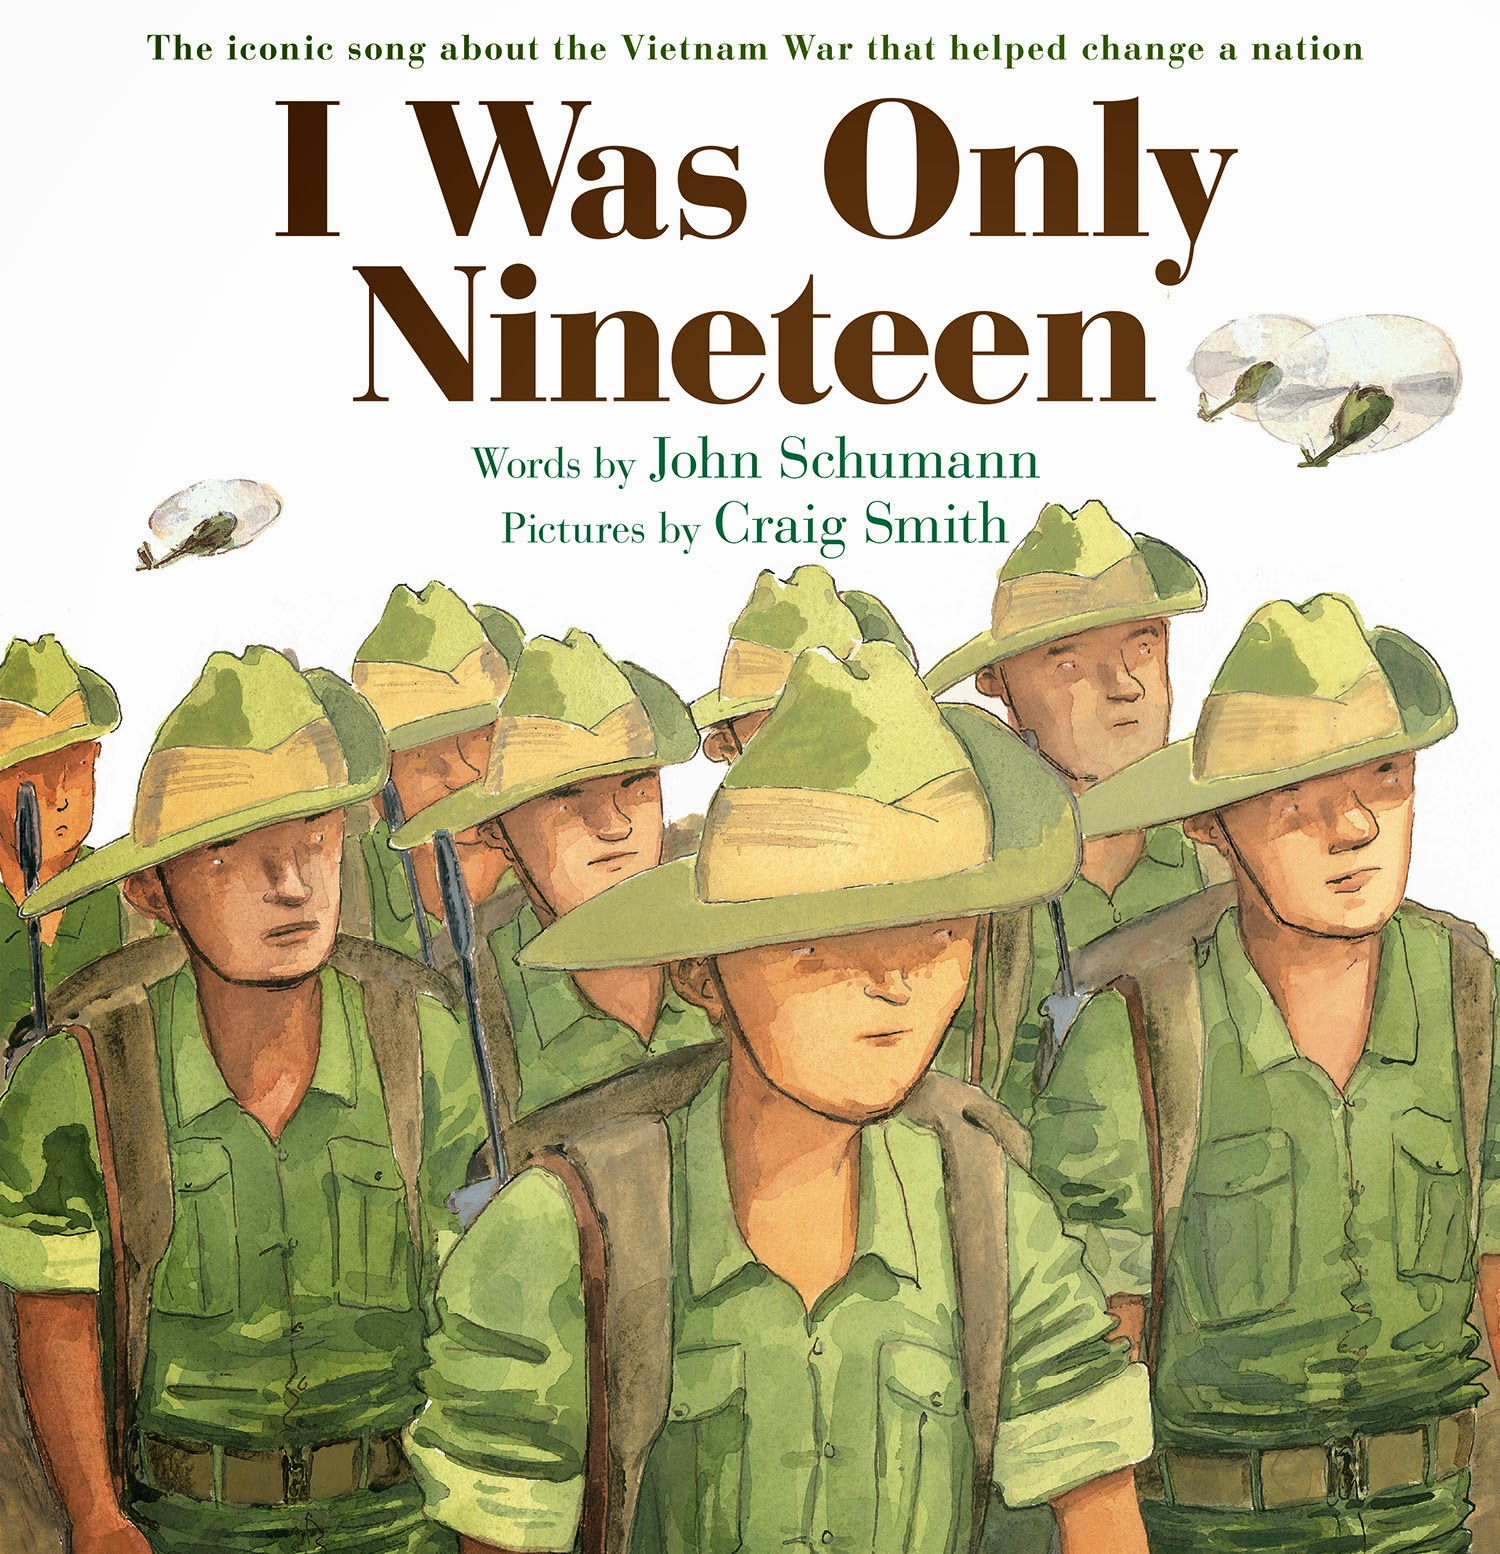 an analysis of review on when i was only nineteen I was only 19 lyrics: mum and dad and danny saw the passing / out parade at puckapunyal / it was a long march from cadets / the sixth battalion was the next to tour and it was me who drew the card.